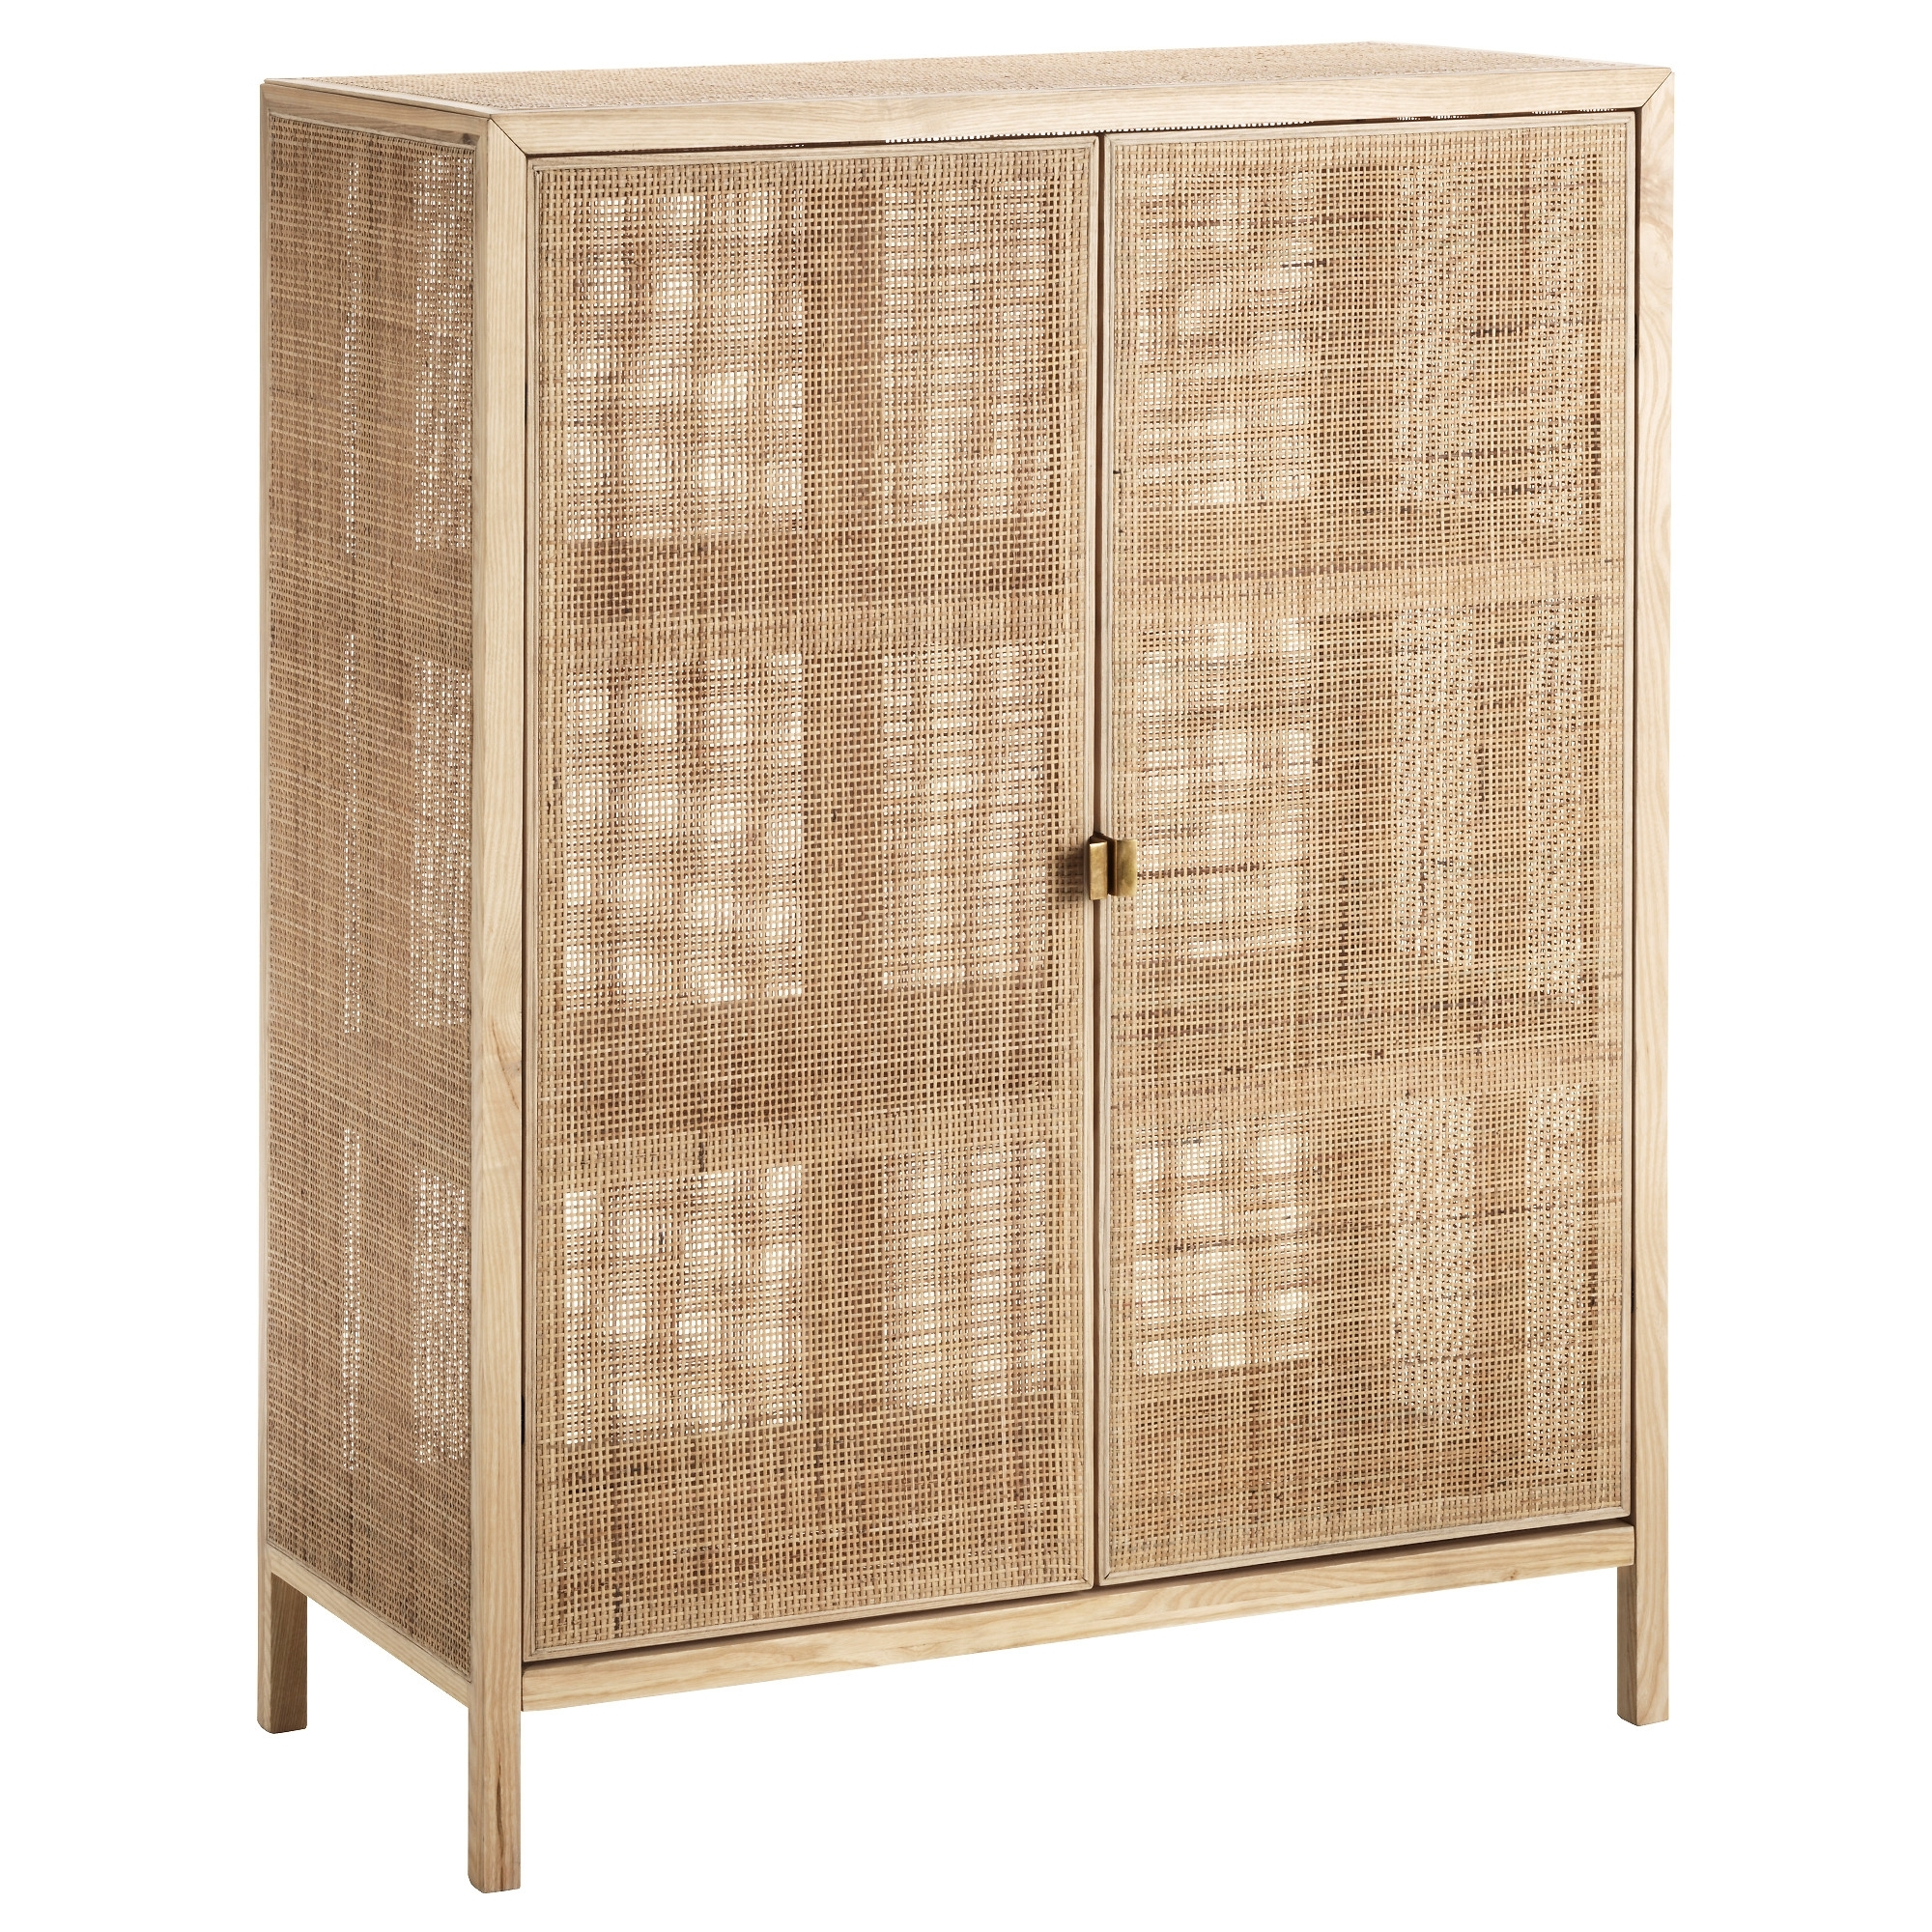 Rattan Wardrobes For Fashionable Stockholm 2017 Cabinet – Ikea (View 10 of 15)